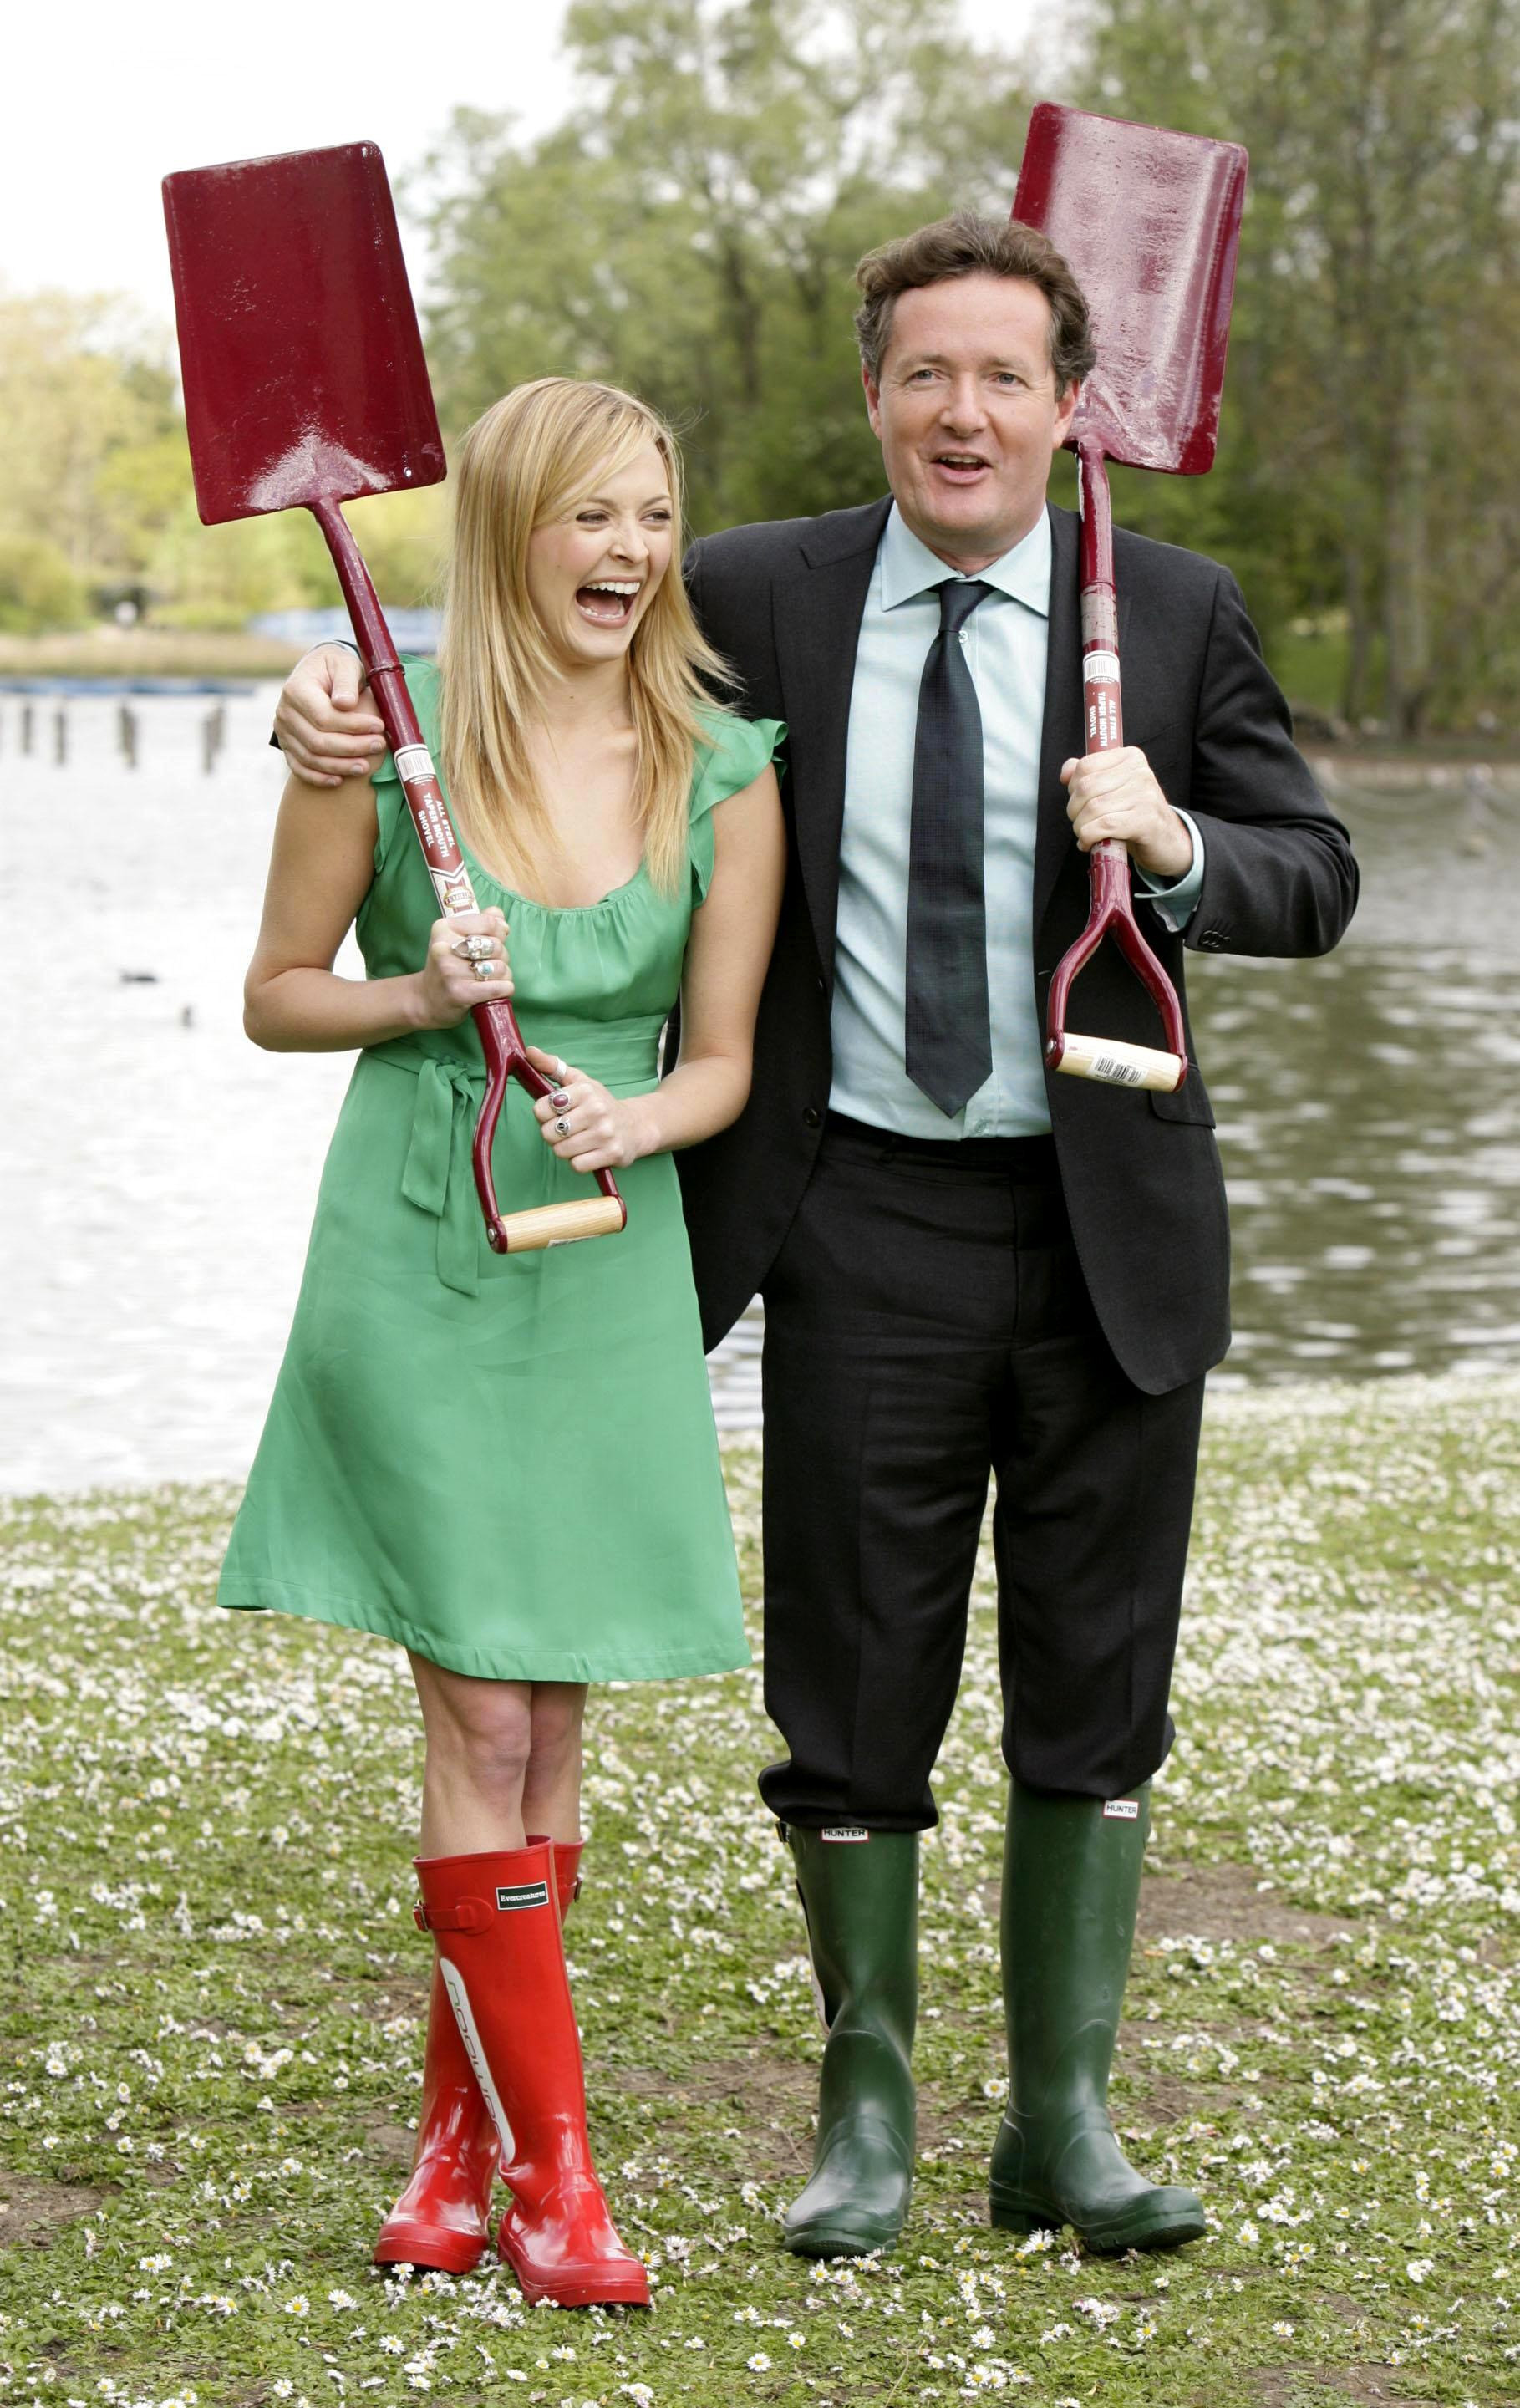 Fearne Cotton and Piers Morgan during a photocall to launch npower's search to find 'green-agers' across the UK to take part in it's Climate Cops programme, in Regents Park, central London.